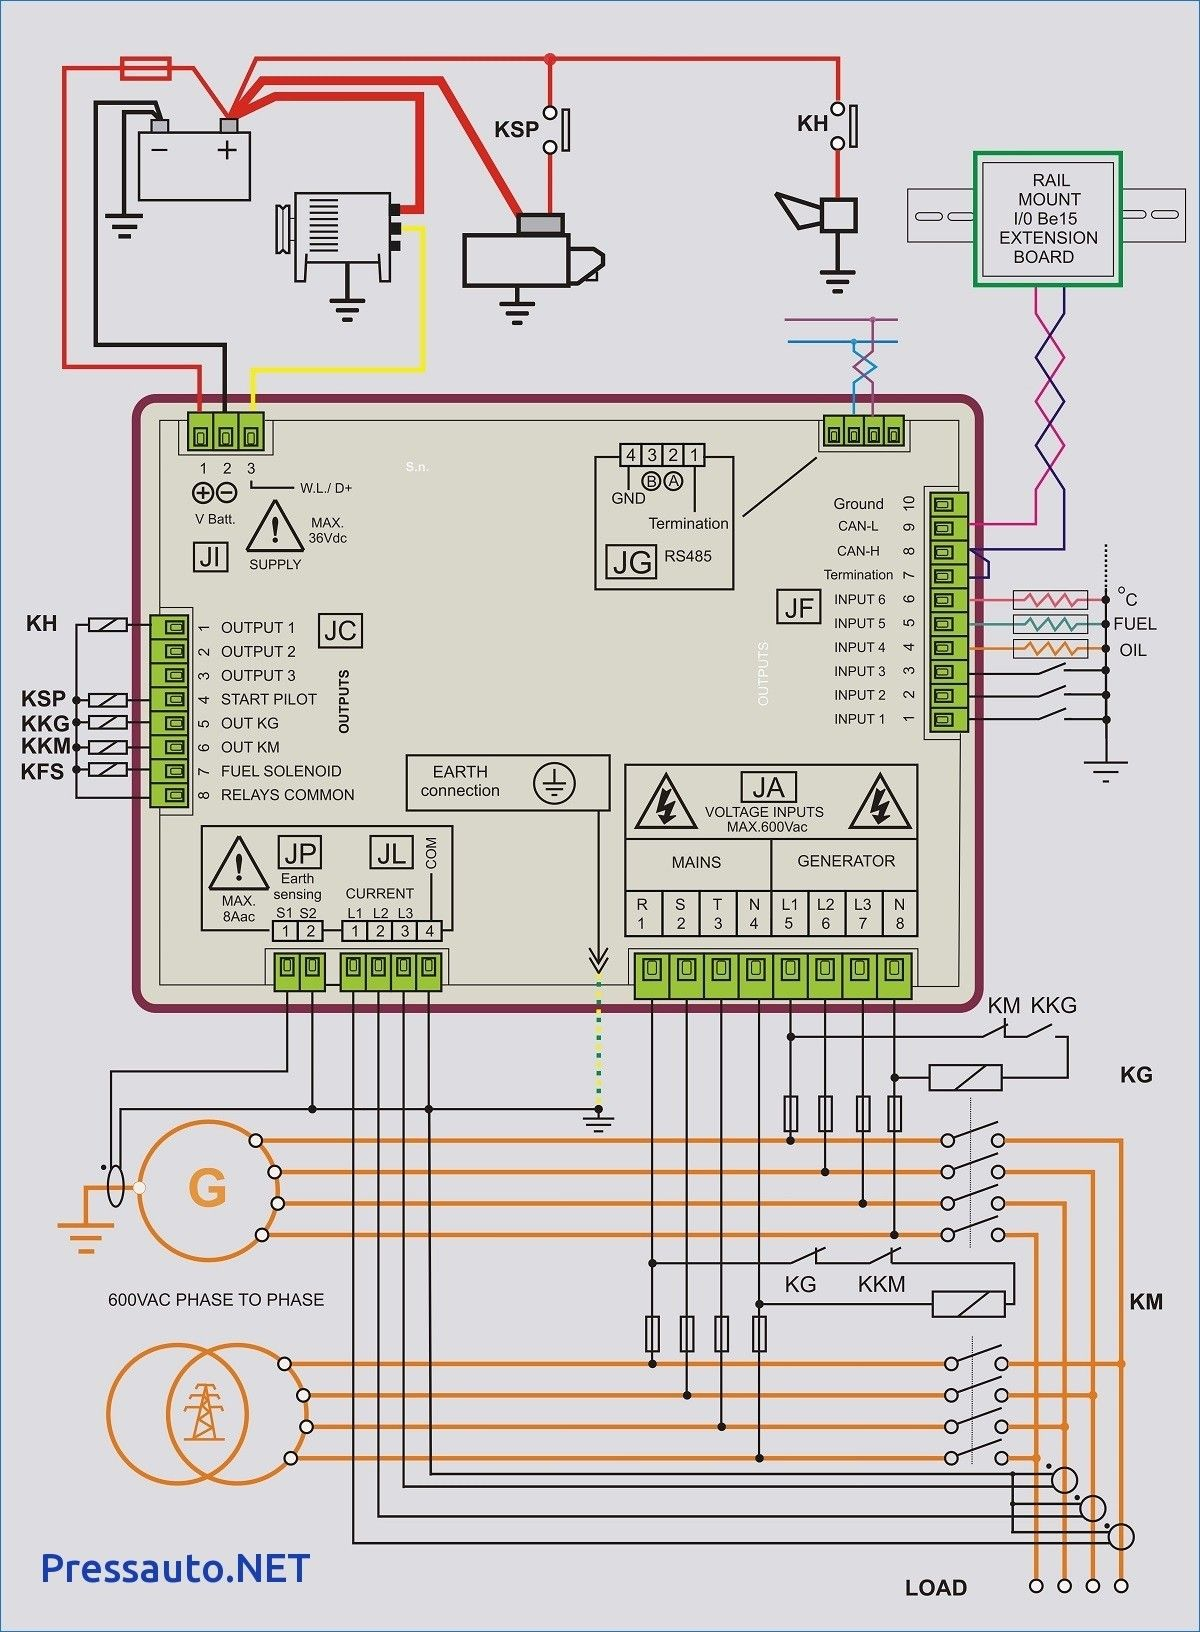 Unique Wiring Diagram Backup Generator Diagram Diagramtemplate Diagramsample Electrical Circuit Diagram Generator Transfer Switch Diagram